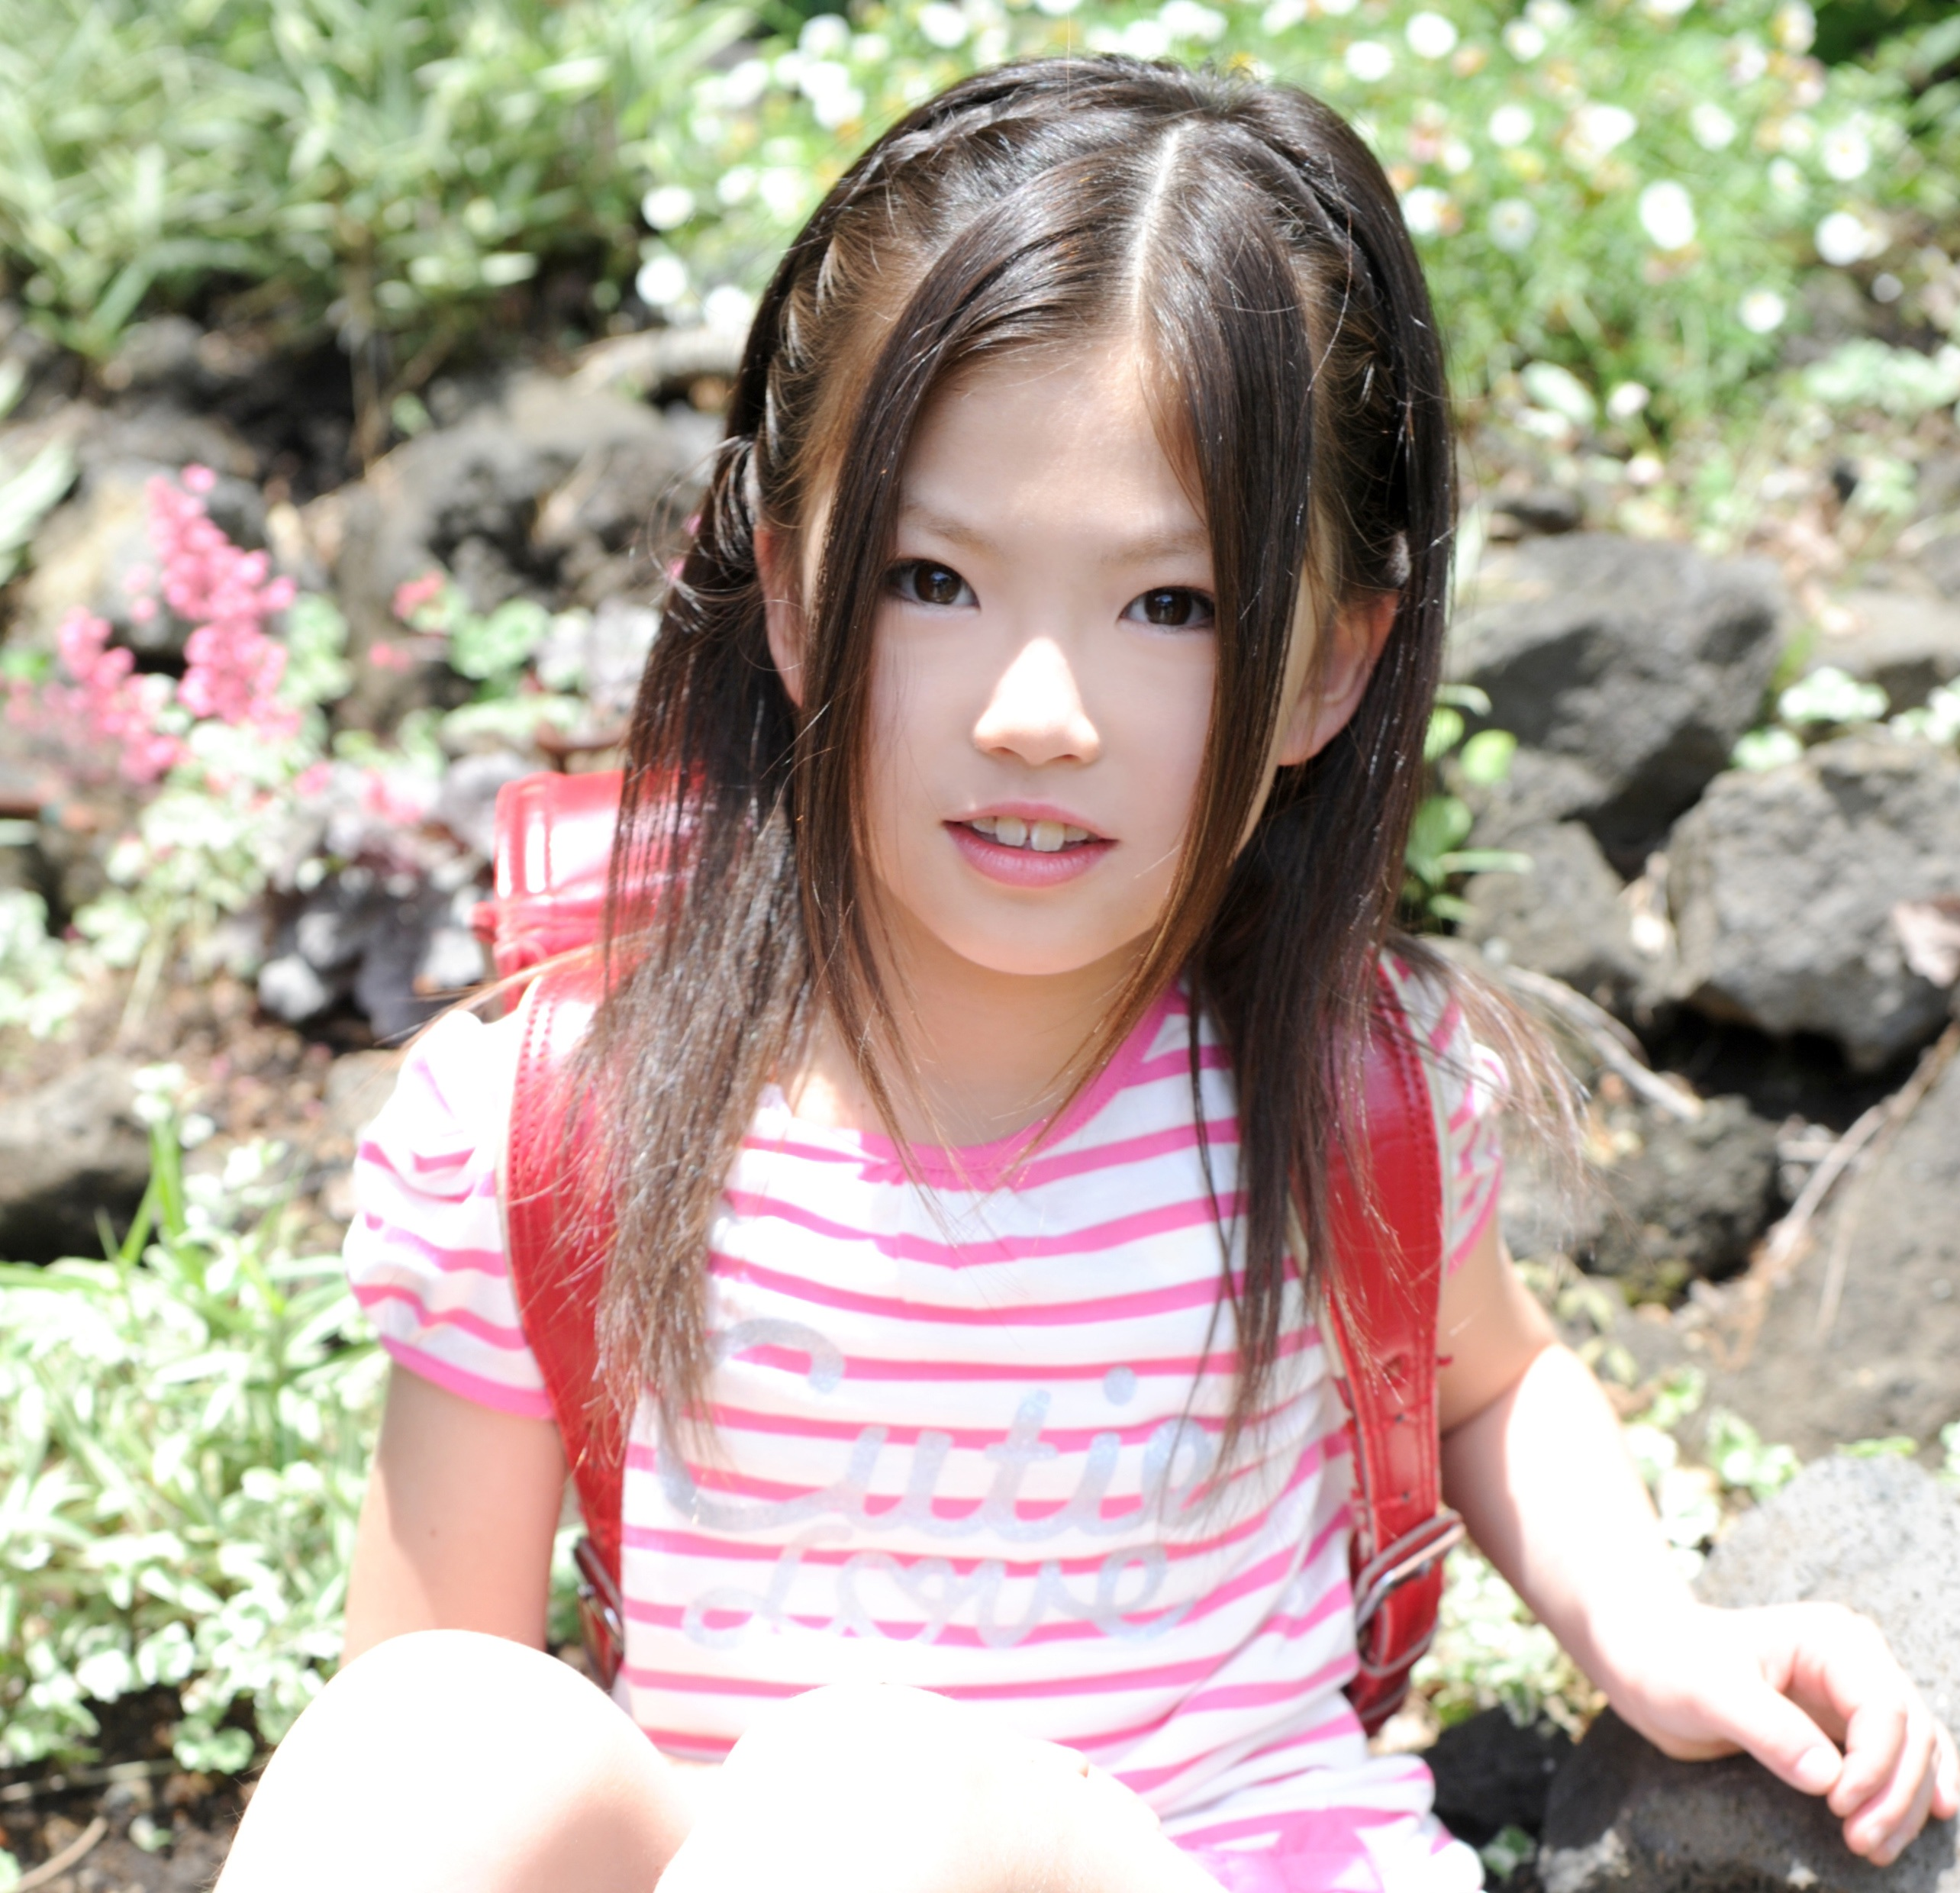 The most beautiful girl in japan